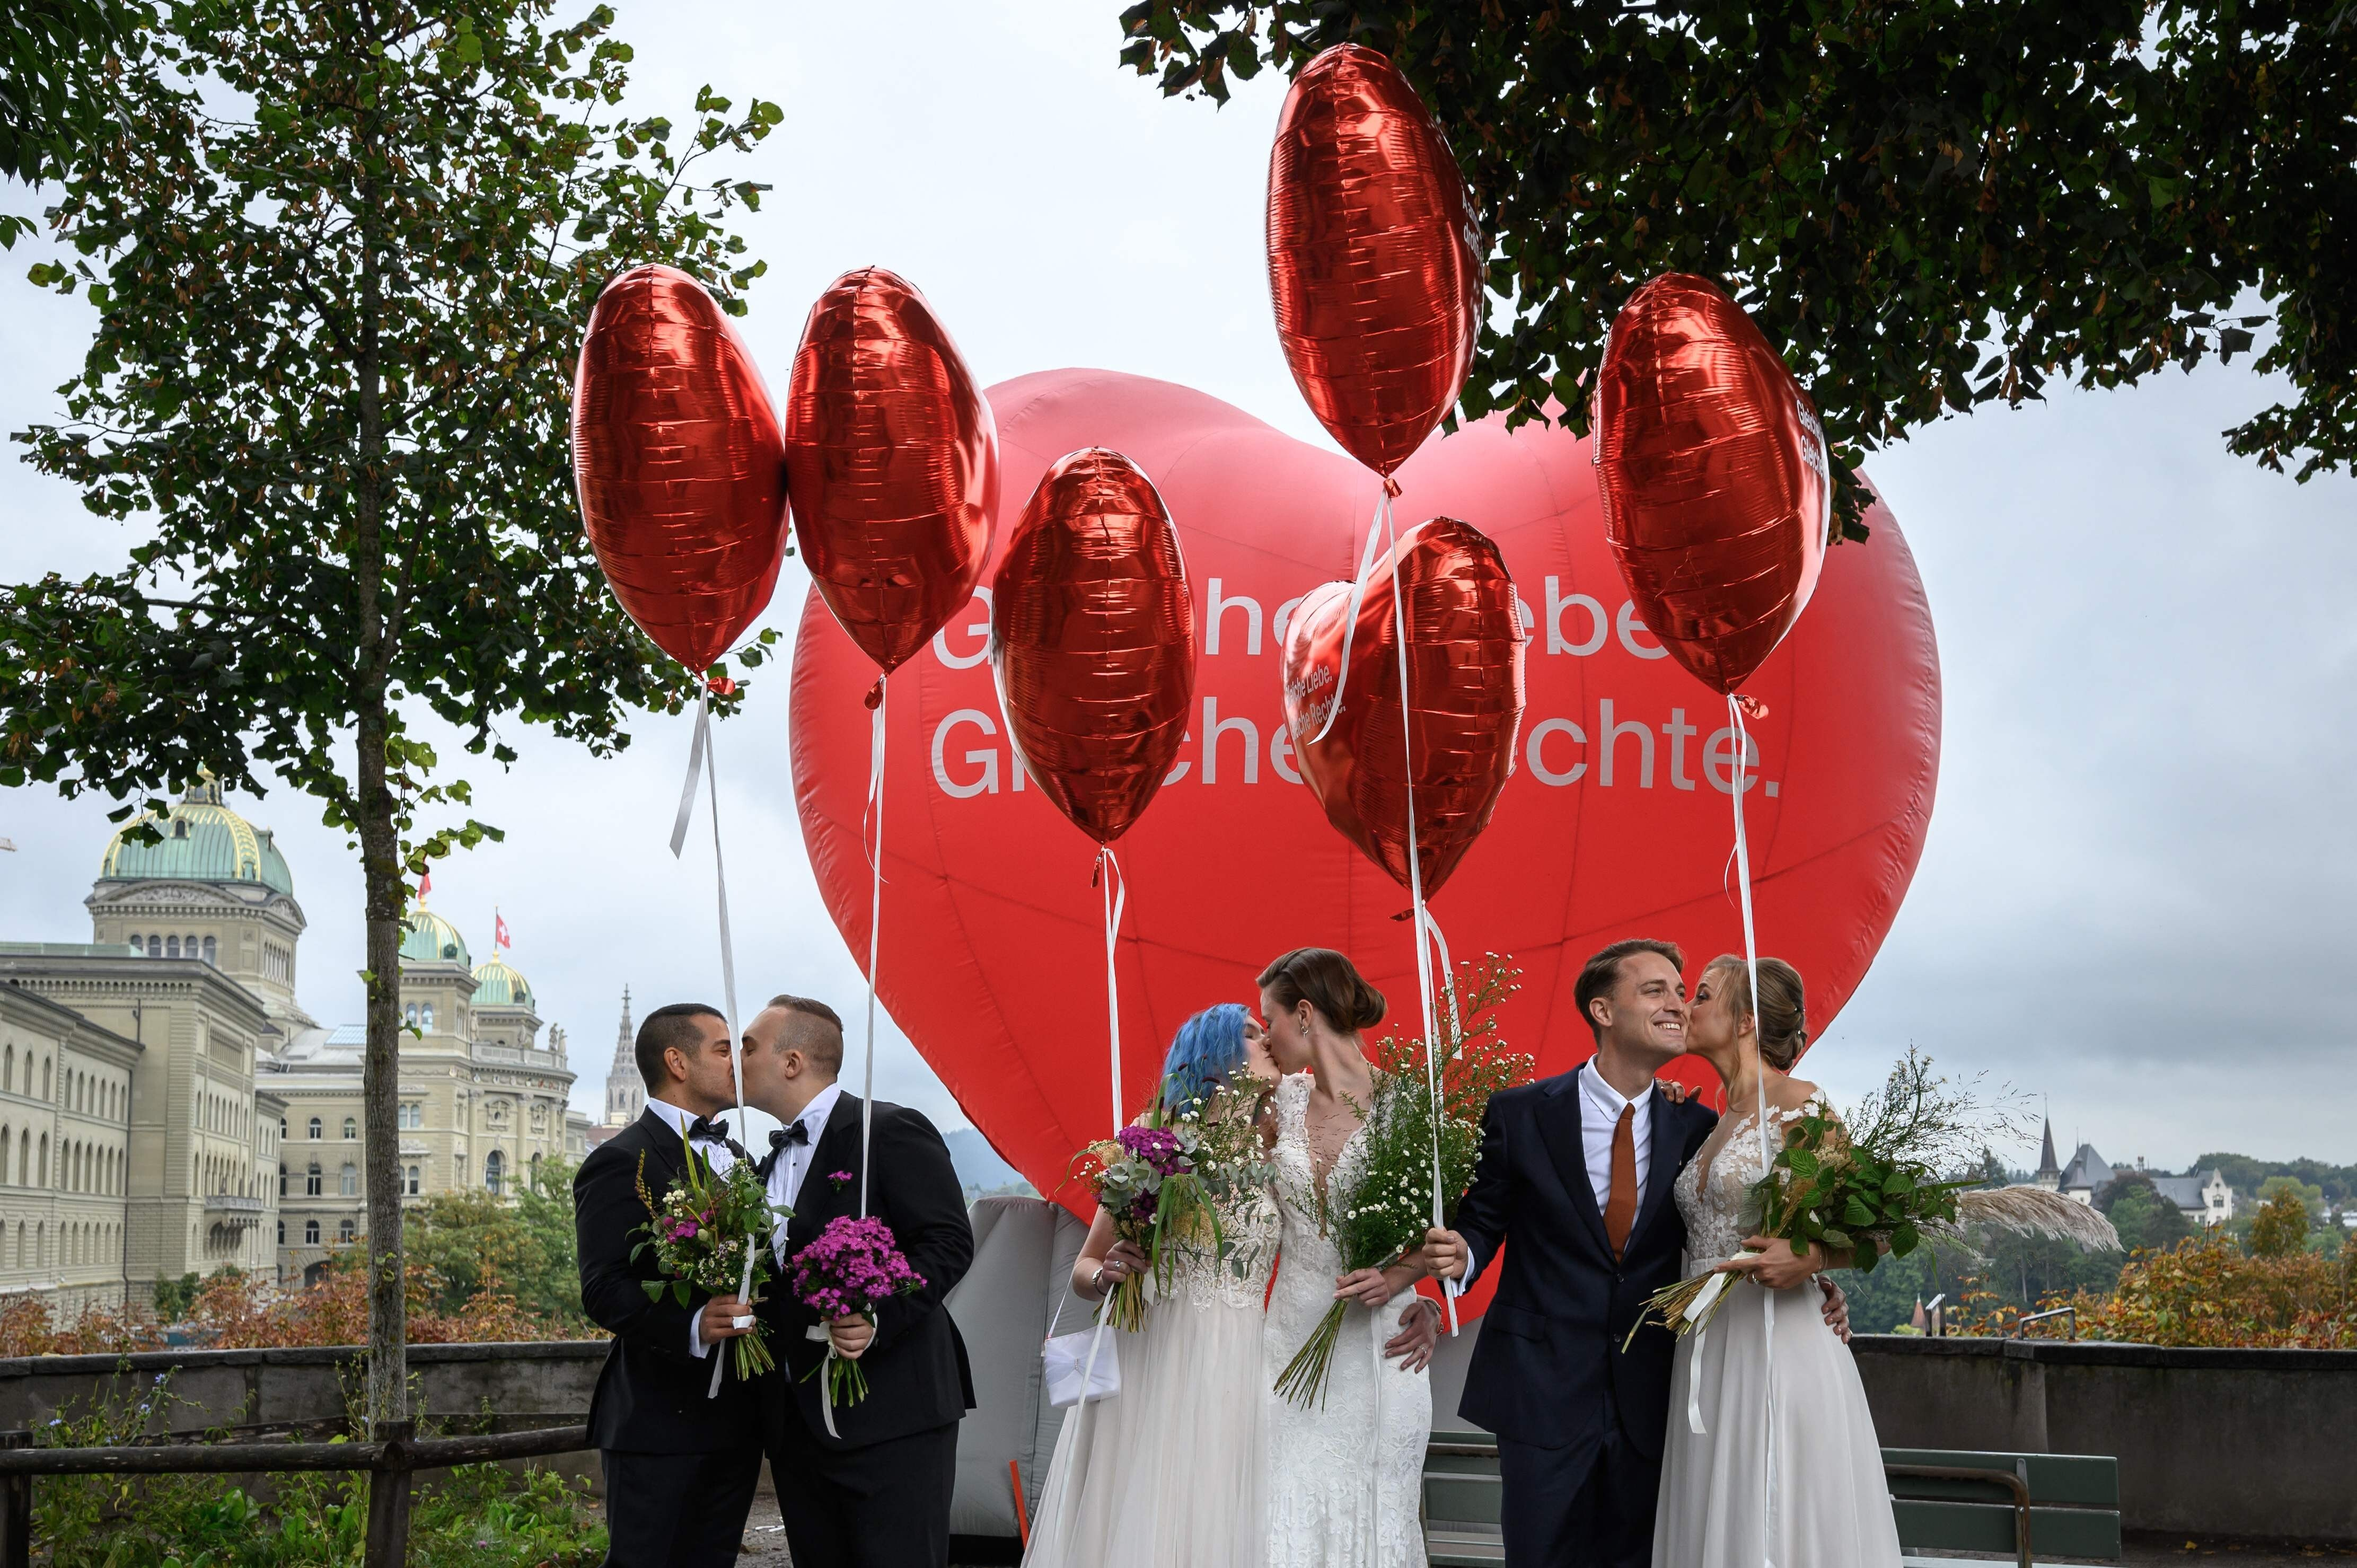 Switzerland votes to make same-sex marriage legal by near two-thirds  majority | South China Morning Post